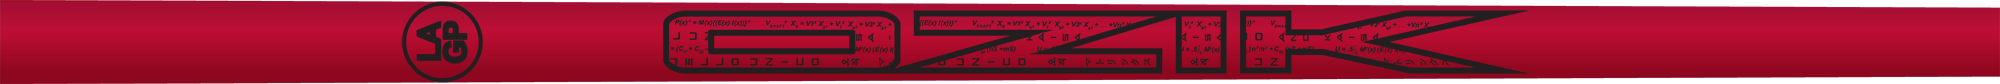 Ozik Red Tie: Candy Apple Red Black Satin - Wood 50 R